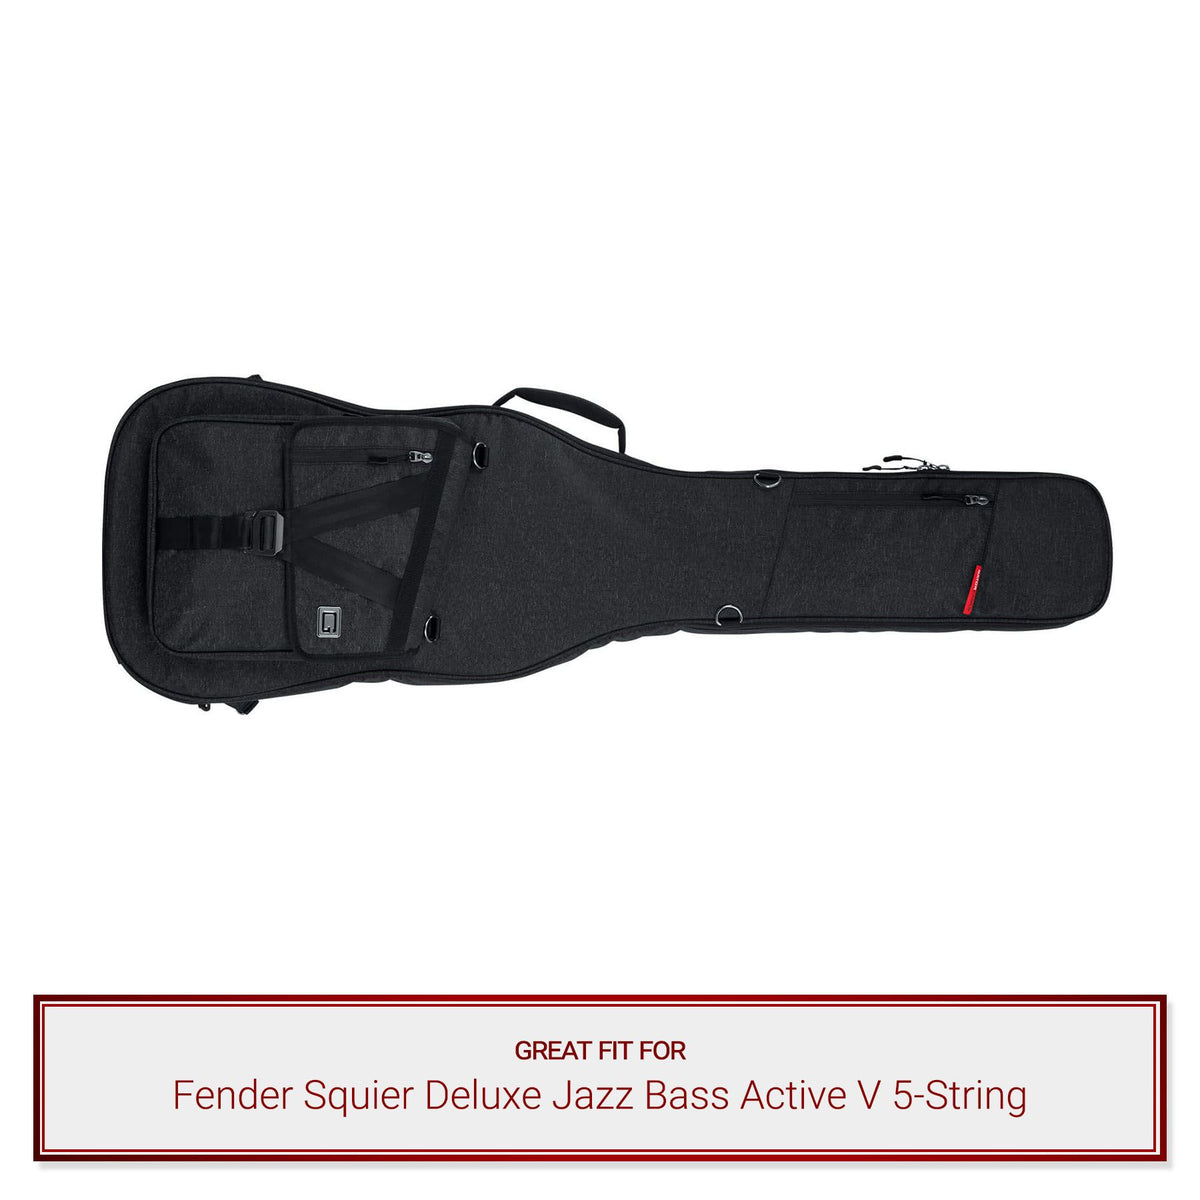 Gator Bass Guitar Case for Fender Squier Deluxe Jazz Bass Active V 5-String